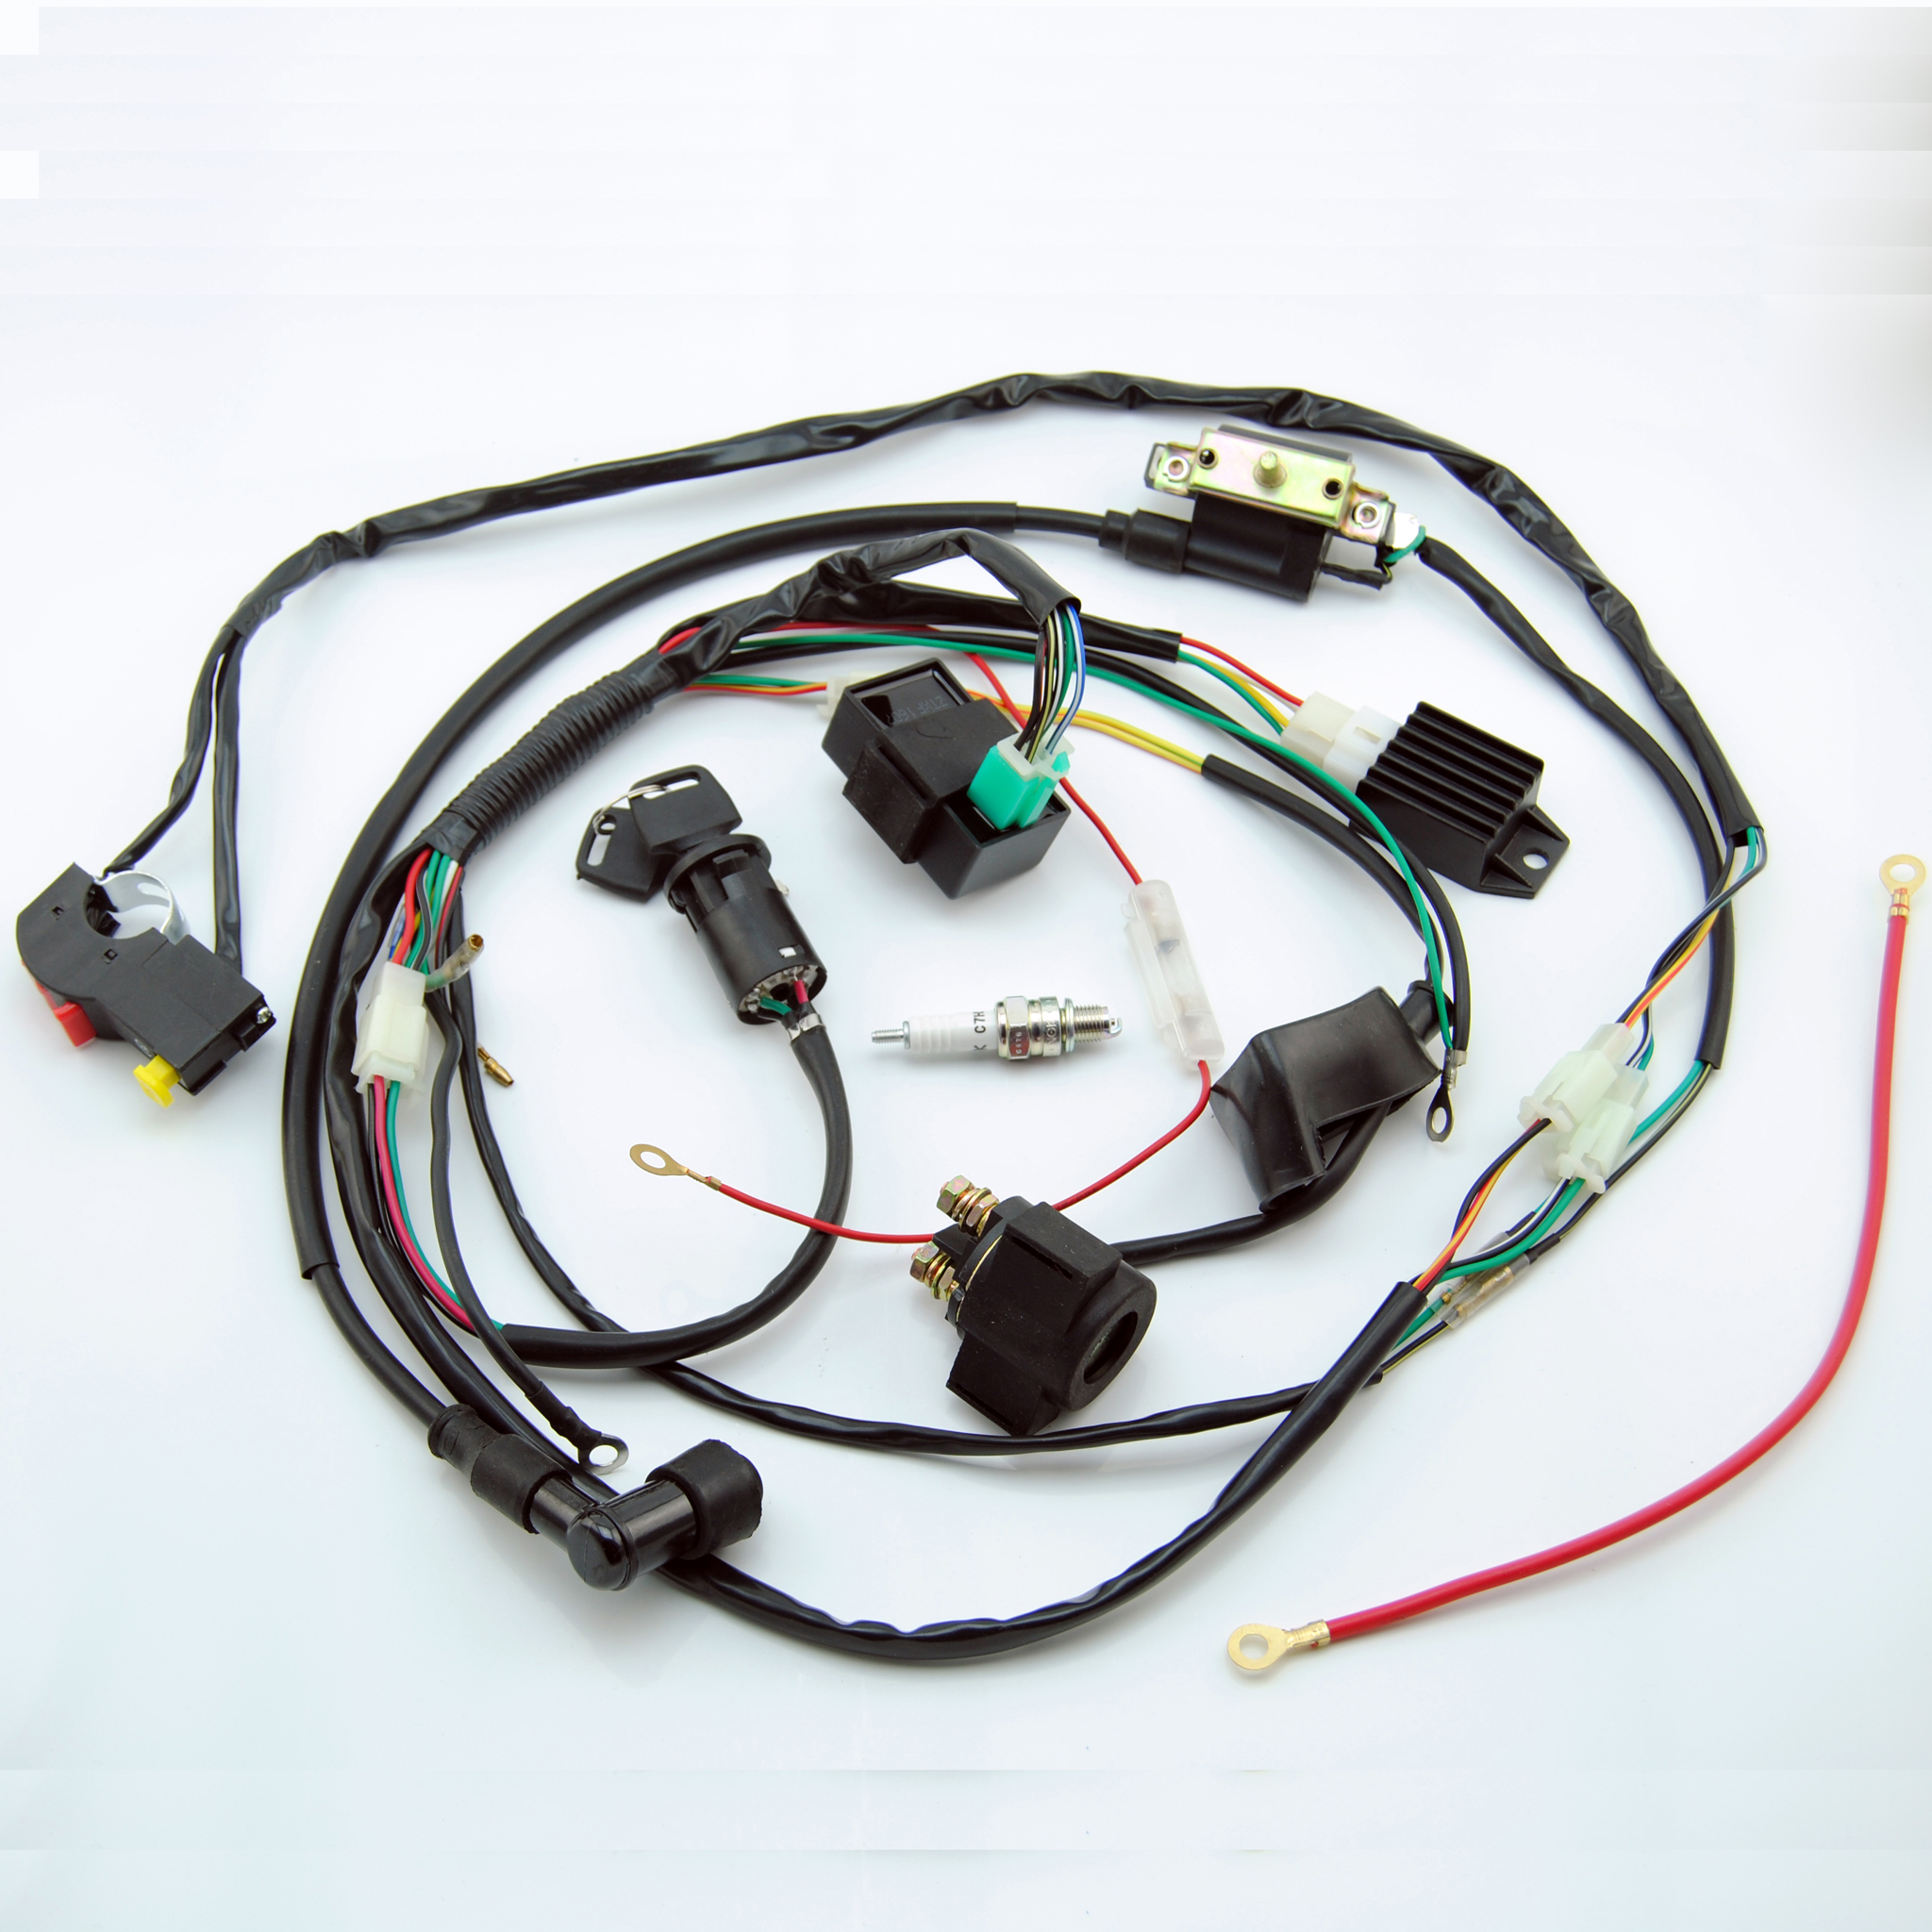 complete electric start engine wiring harness loom 110 125cc quad bike atv buggy free shipping [ 2048 x 2048 Pixel ]